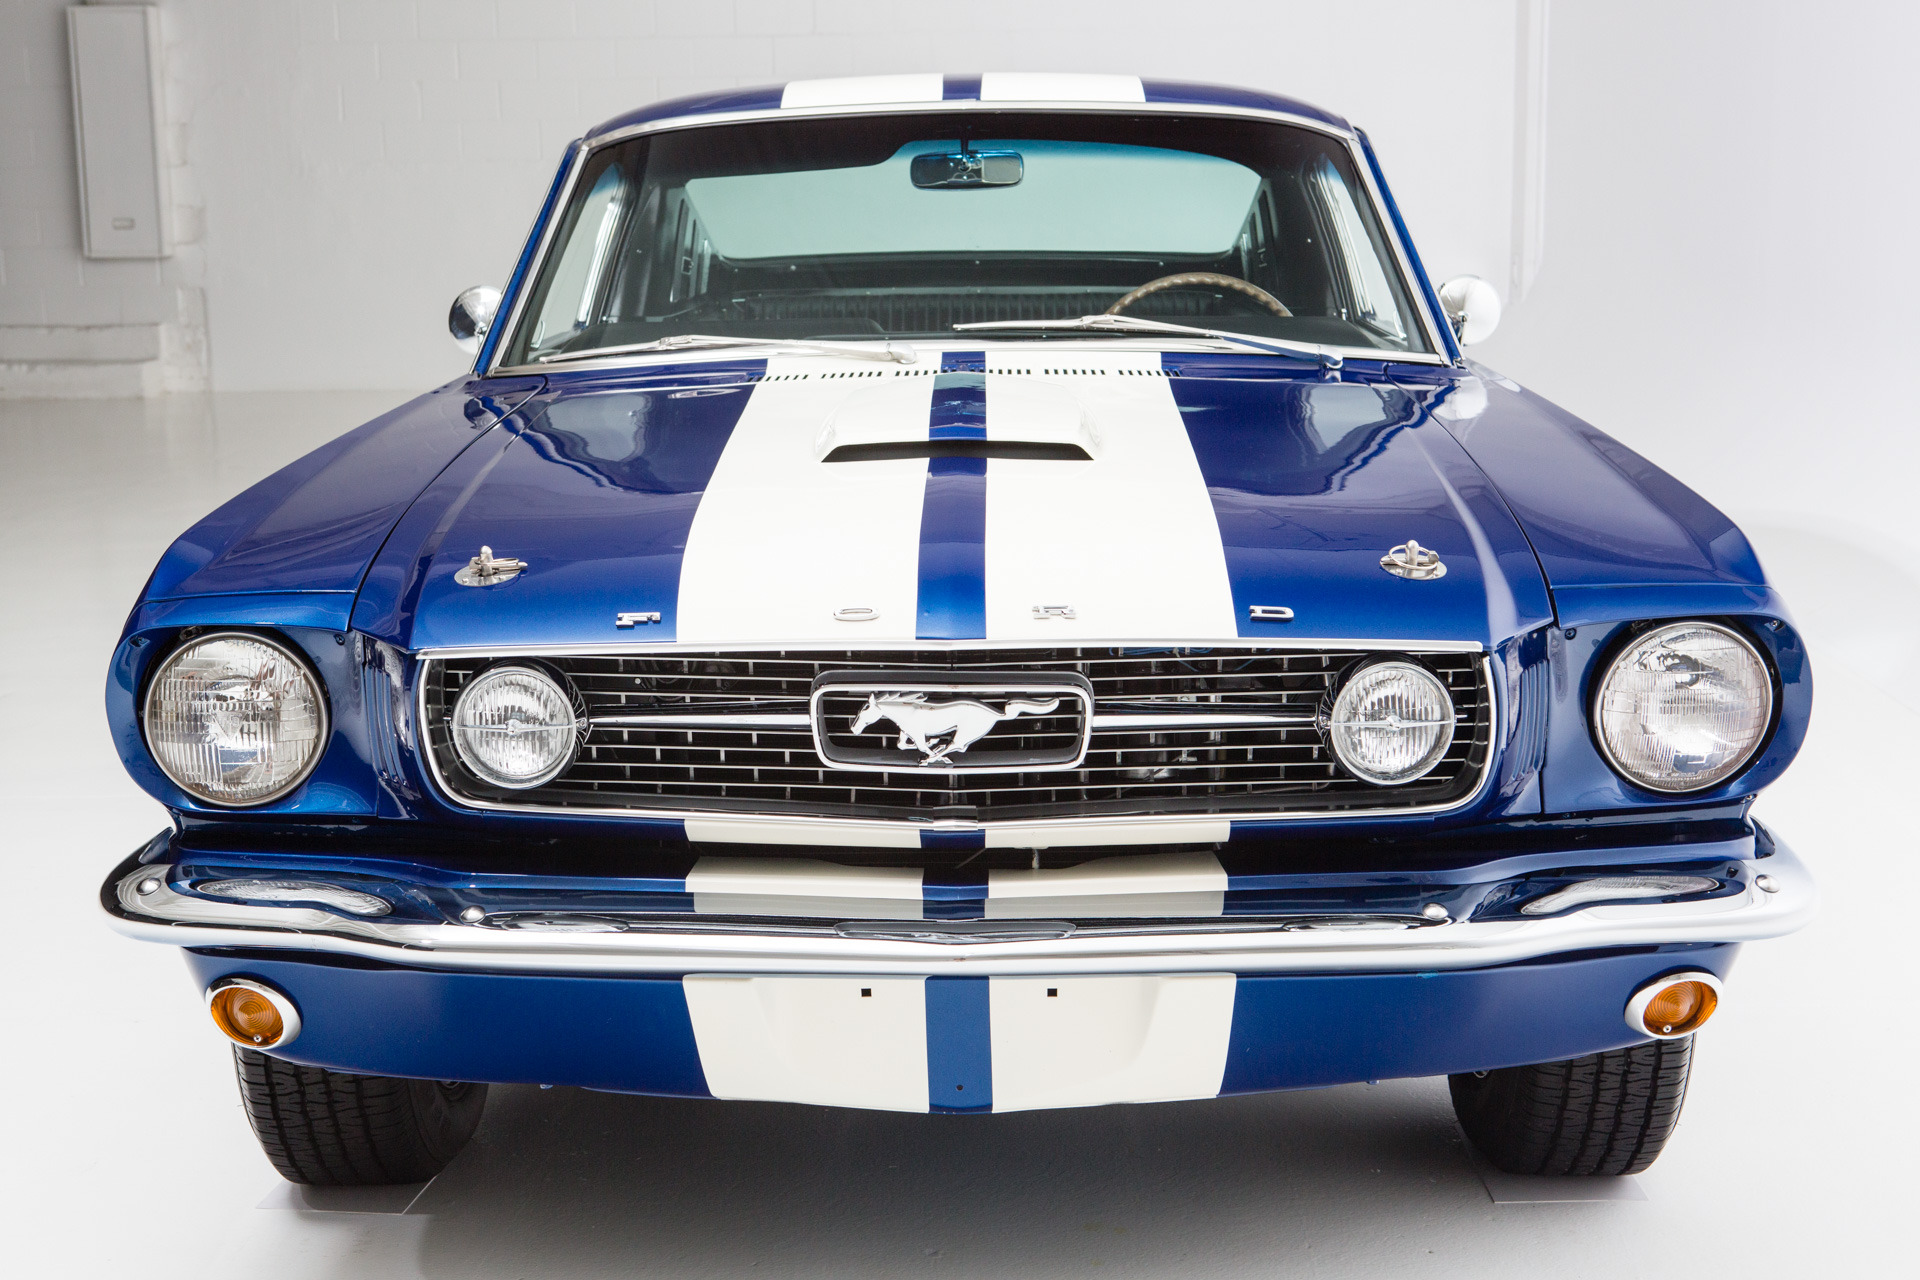 1966 Ford Mustang Fastback Cobalt Blue 2 2 American Dream